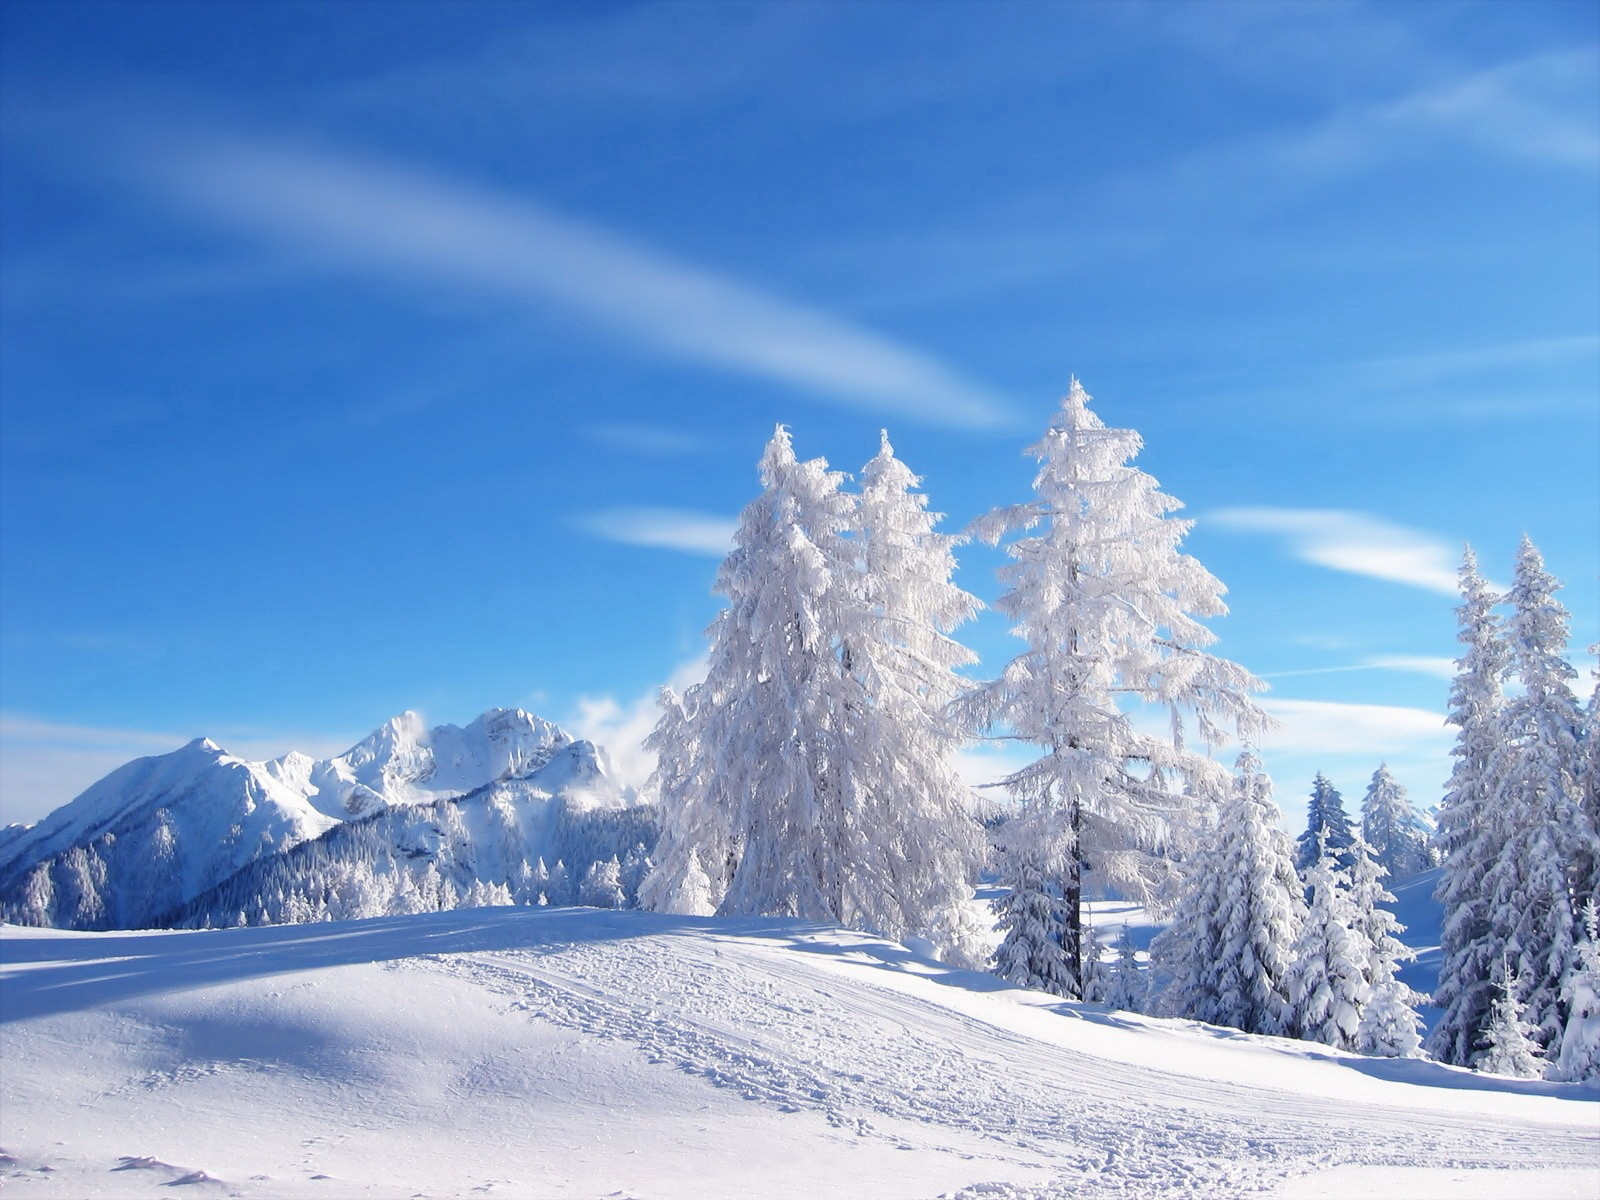 ski slopes Wallpapers   SIZE 1600x1200px wallpapers pictures 1600x1200